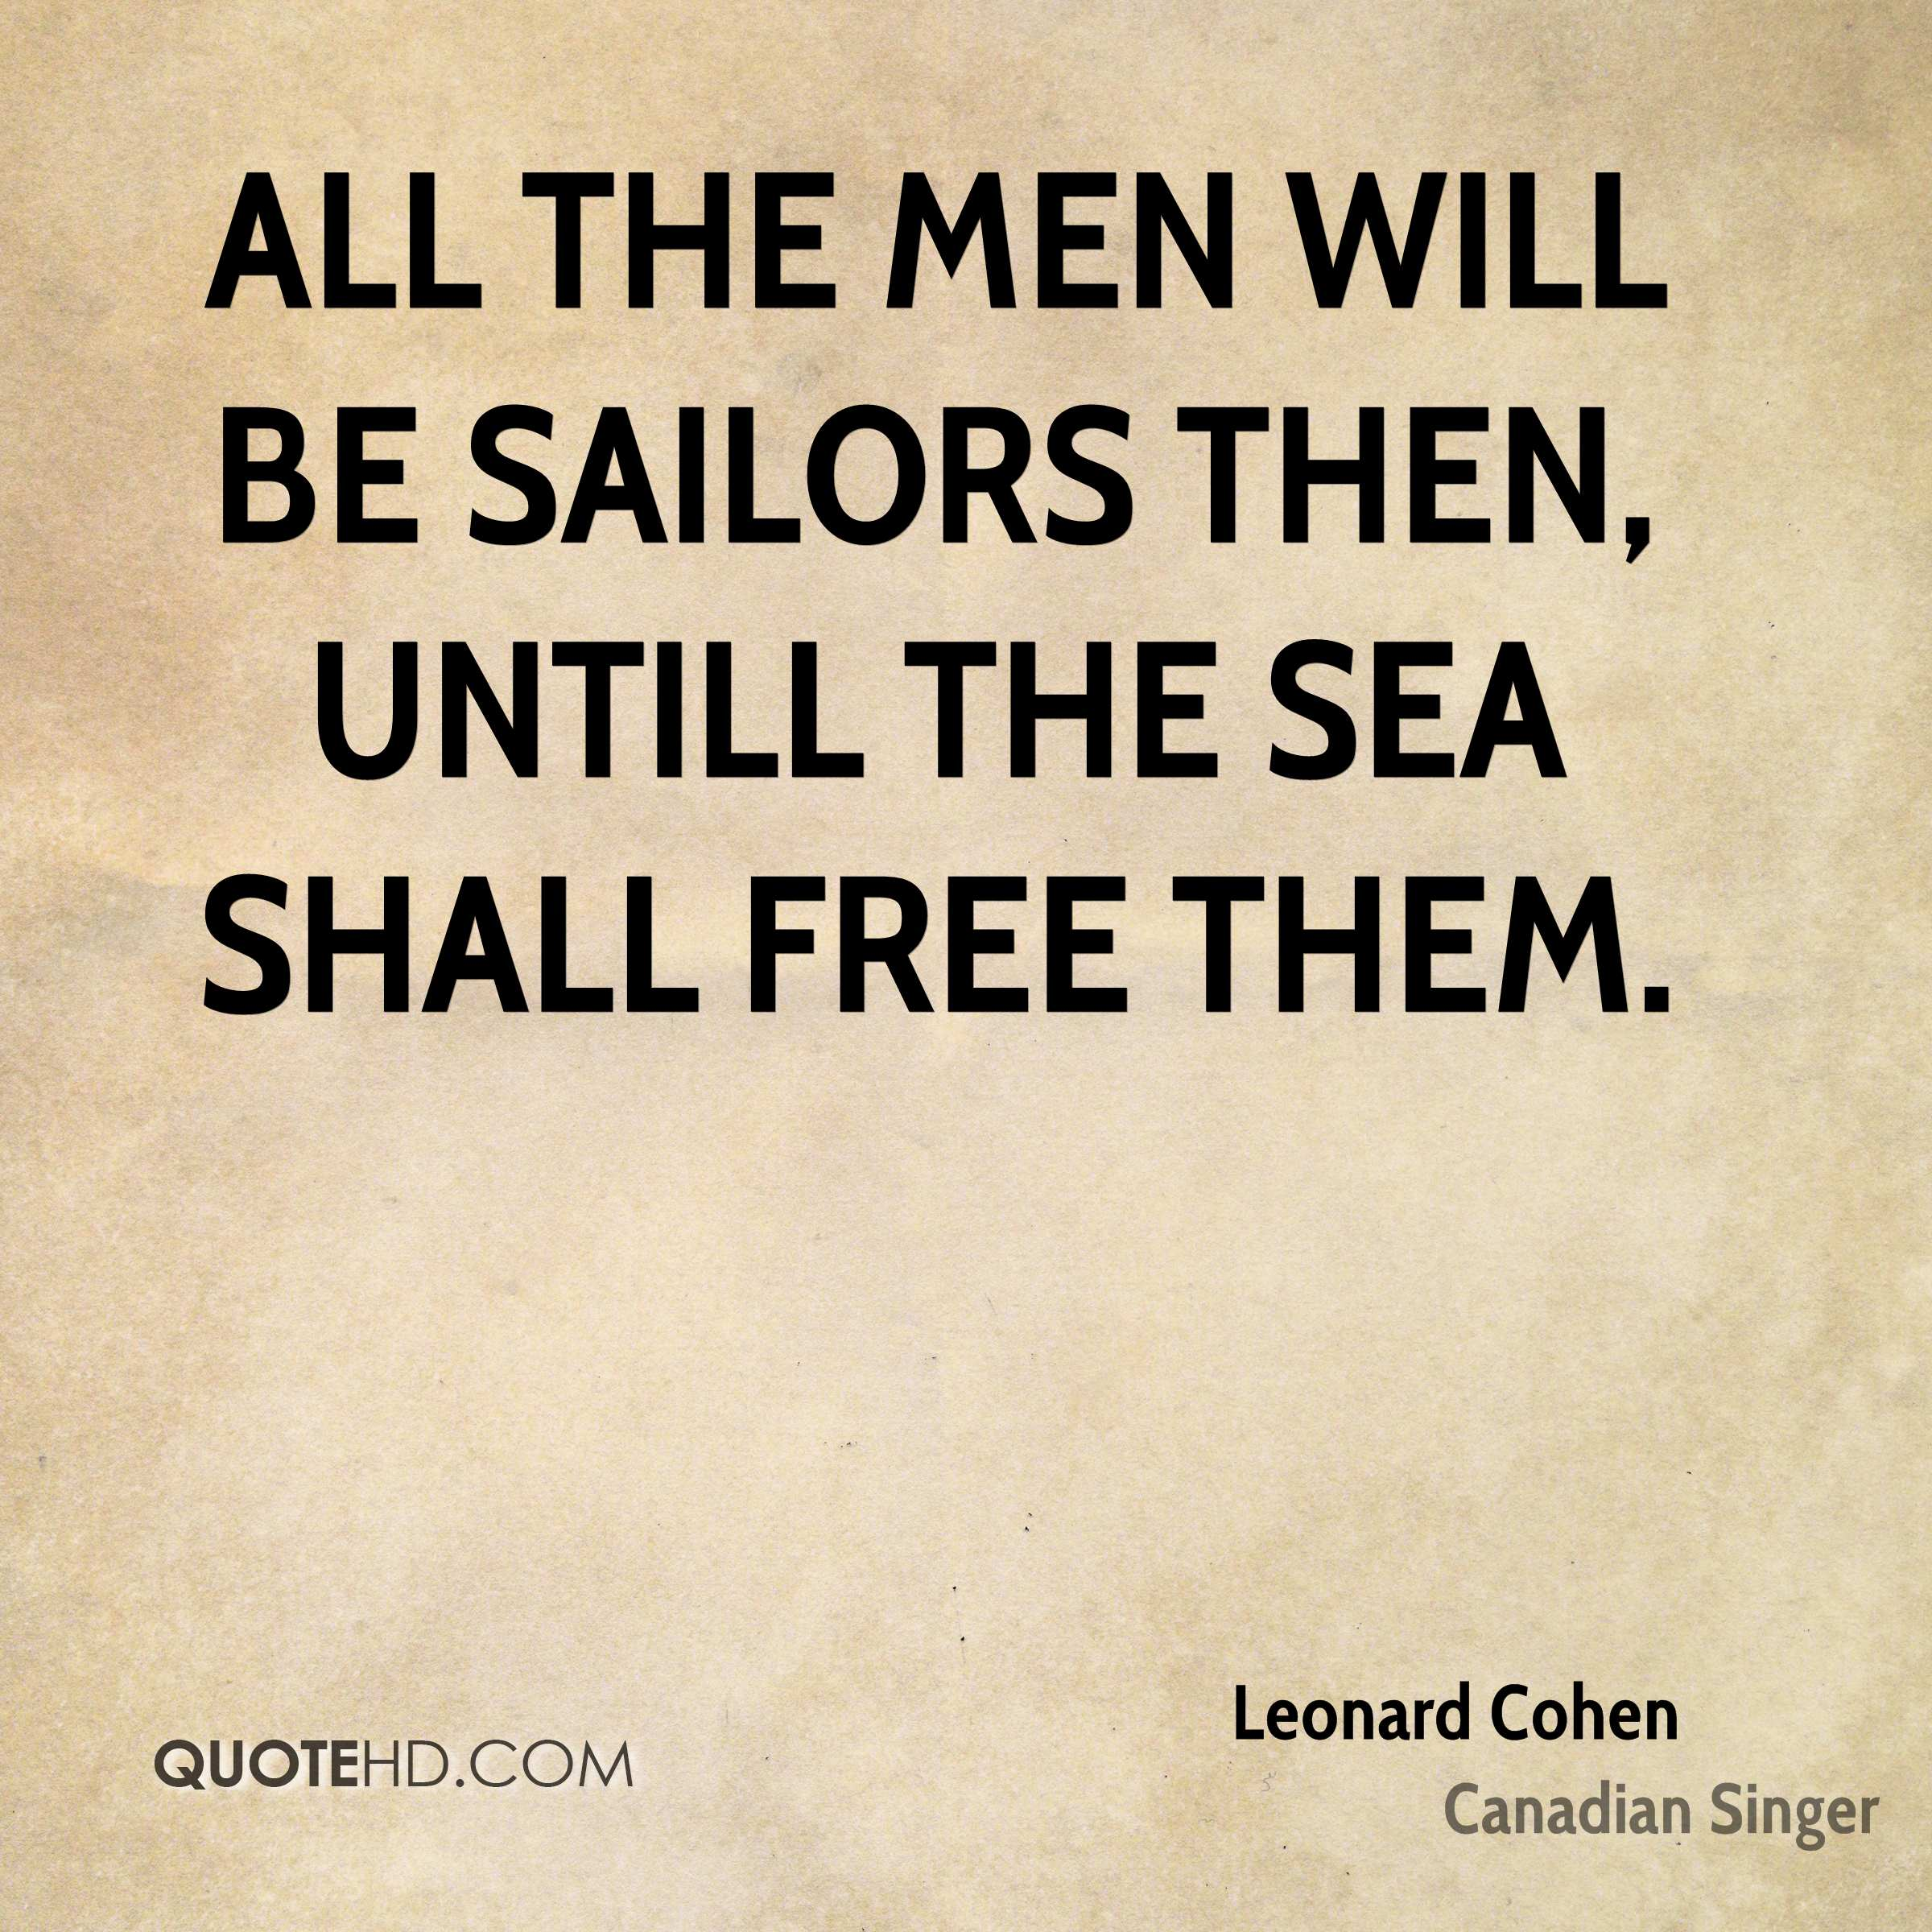 All the Men will be sailors then, untill the sea shall free them.